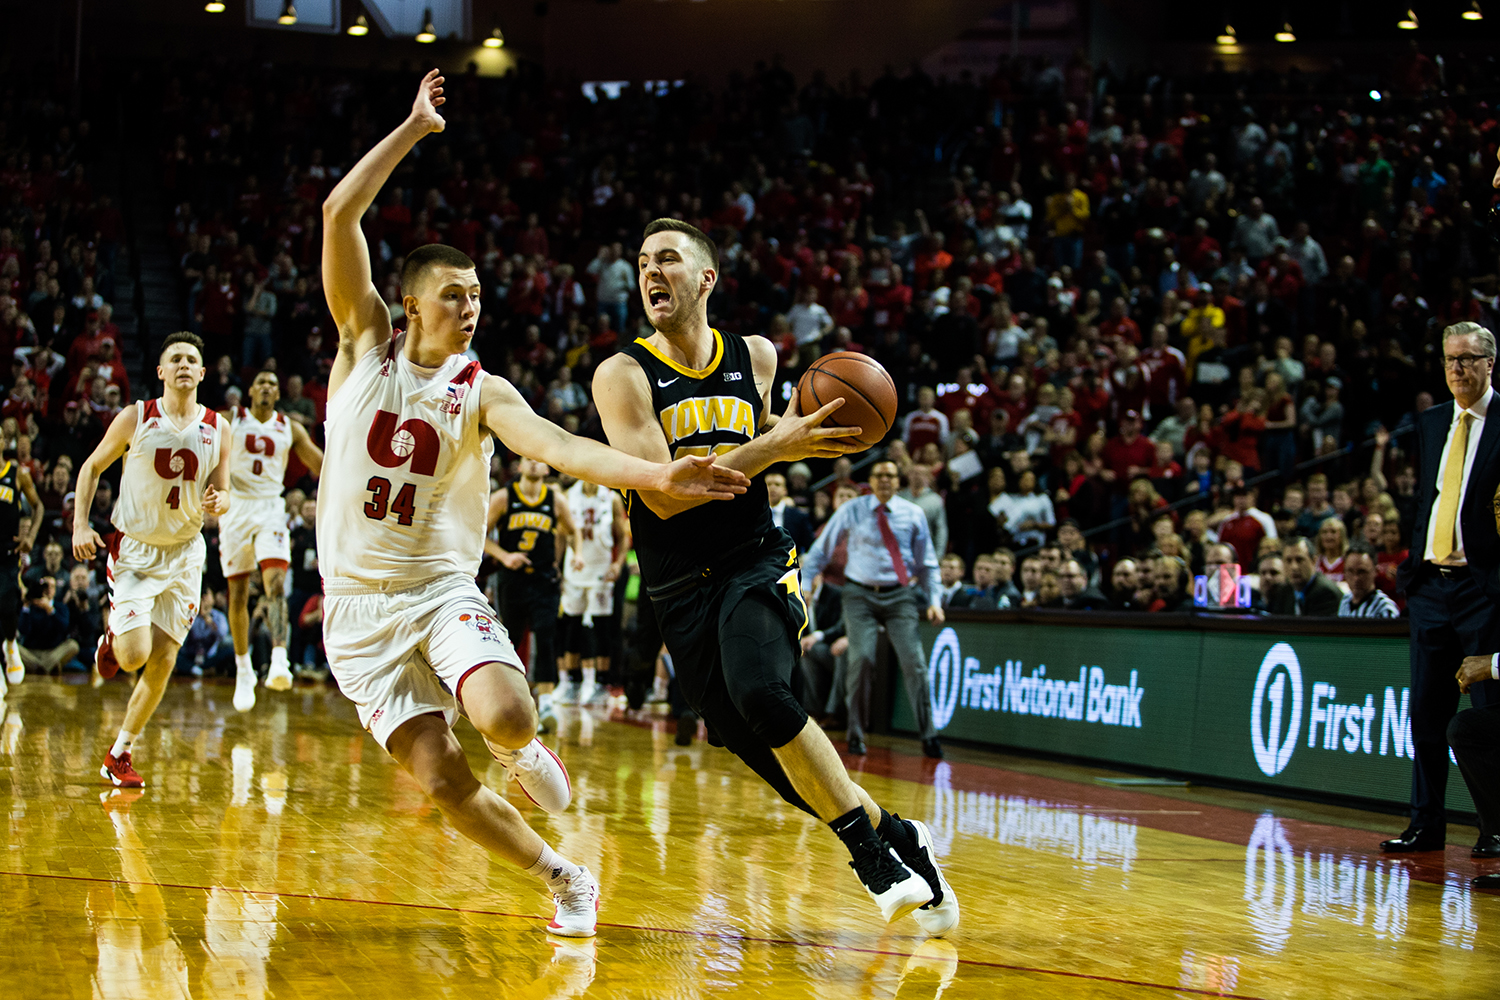 Iowa Guard Conner McCaffery #30 dribbles down the court during a mens basketball game between the Iowa Hawkeyes and the Nebraska Huskers at Pinnacle Bank Arena on Sunday, March 10, 2019. The Hawkeyes fell in overtime to the Huskers, 93-91.